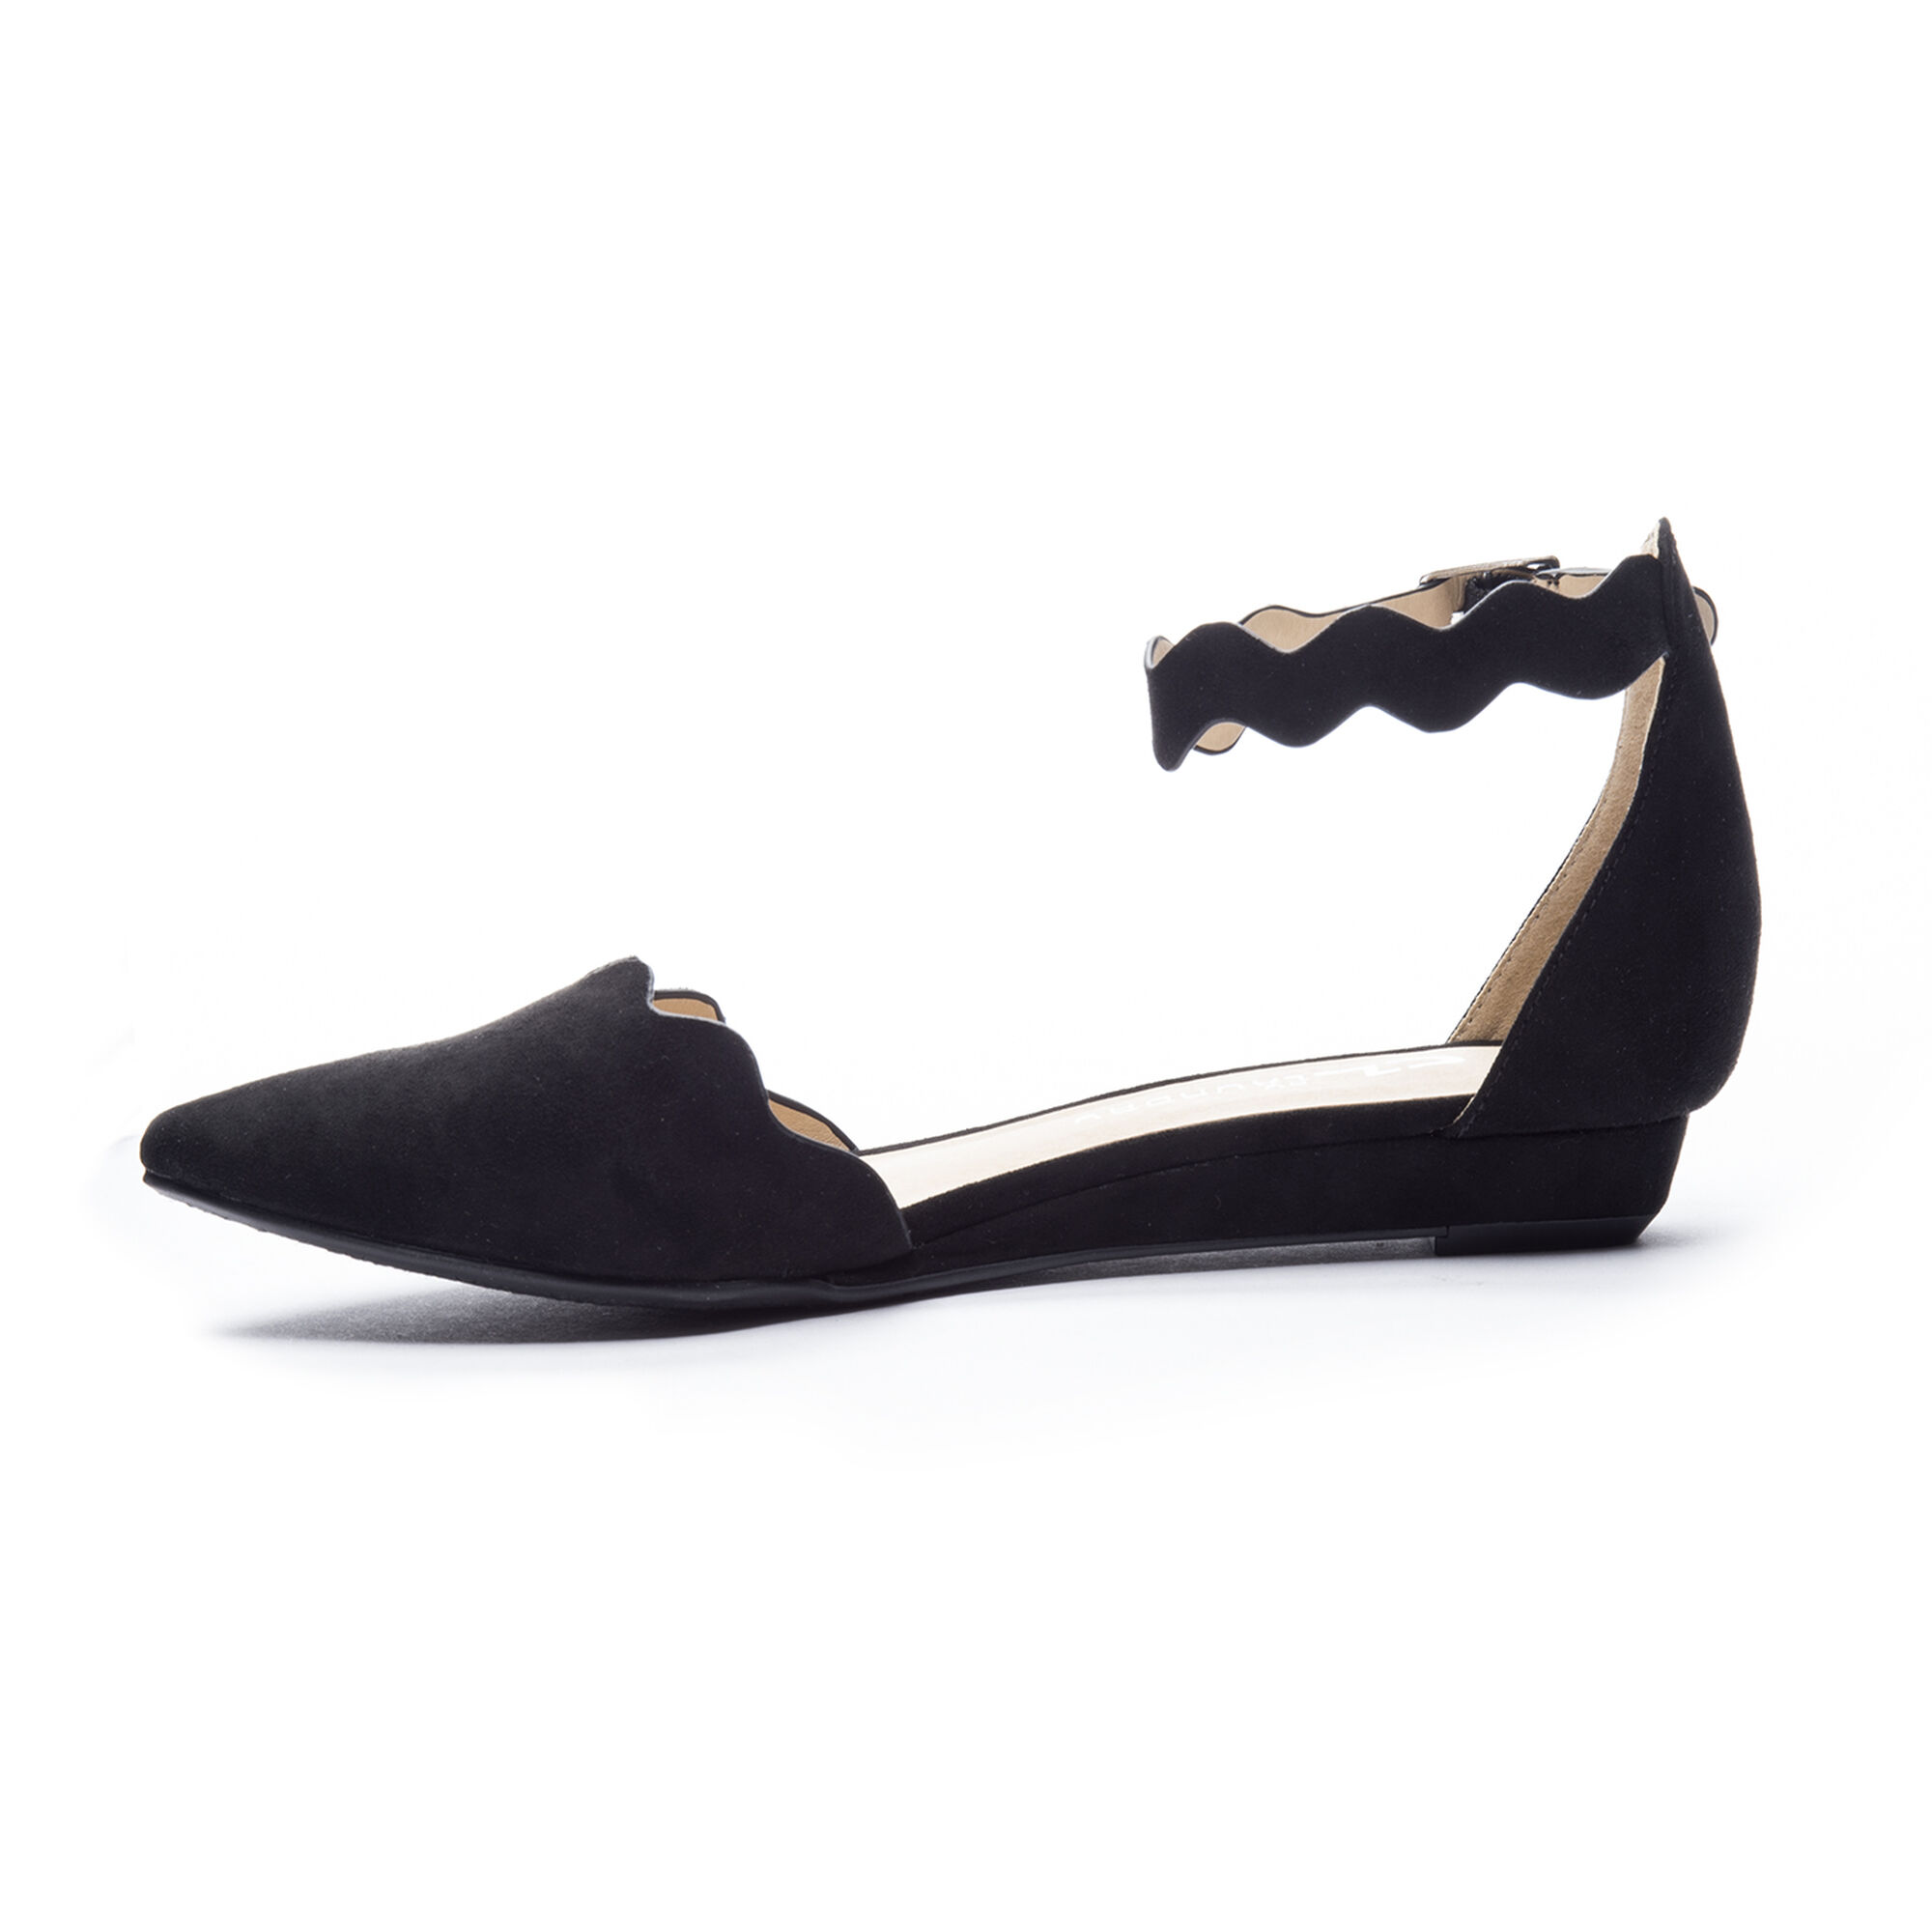 Studio D Orsay Ankle Strap Flat Chinese Laundry